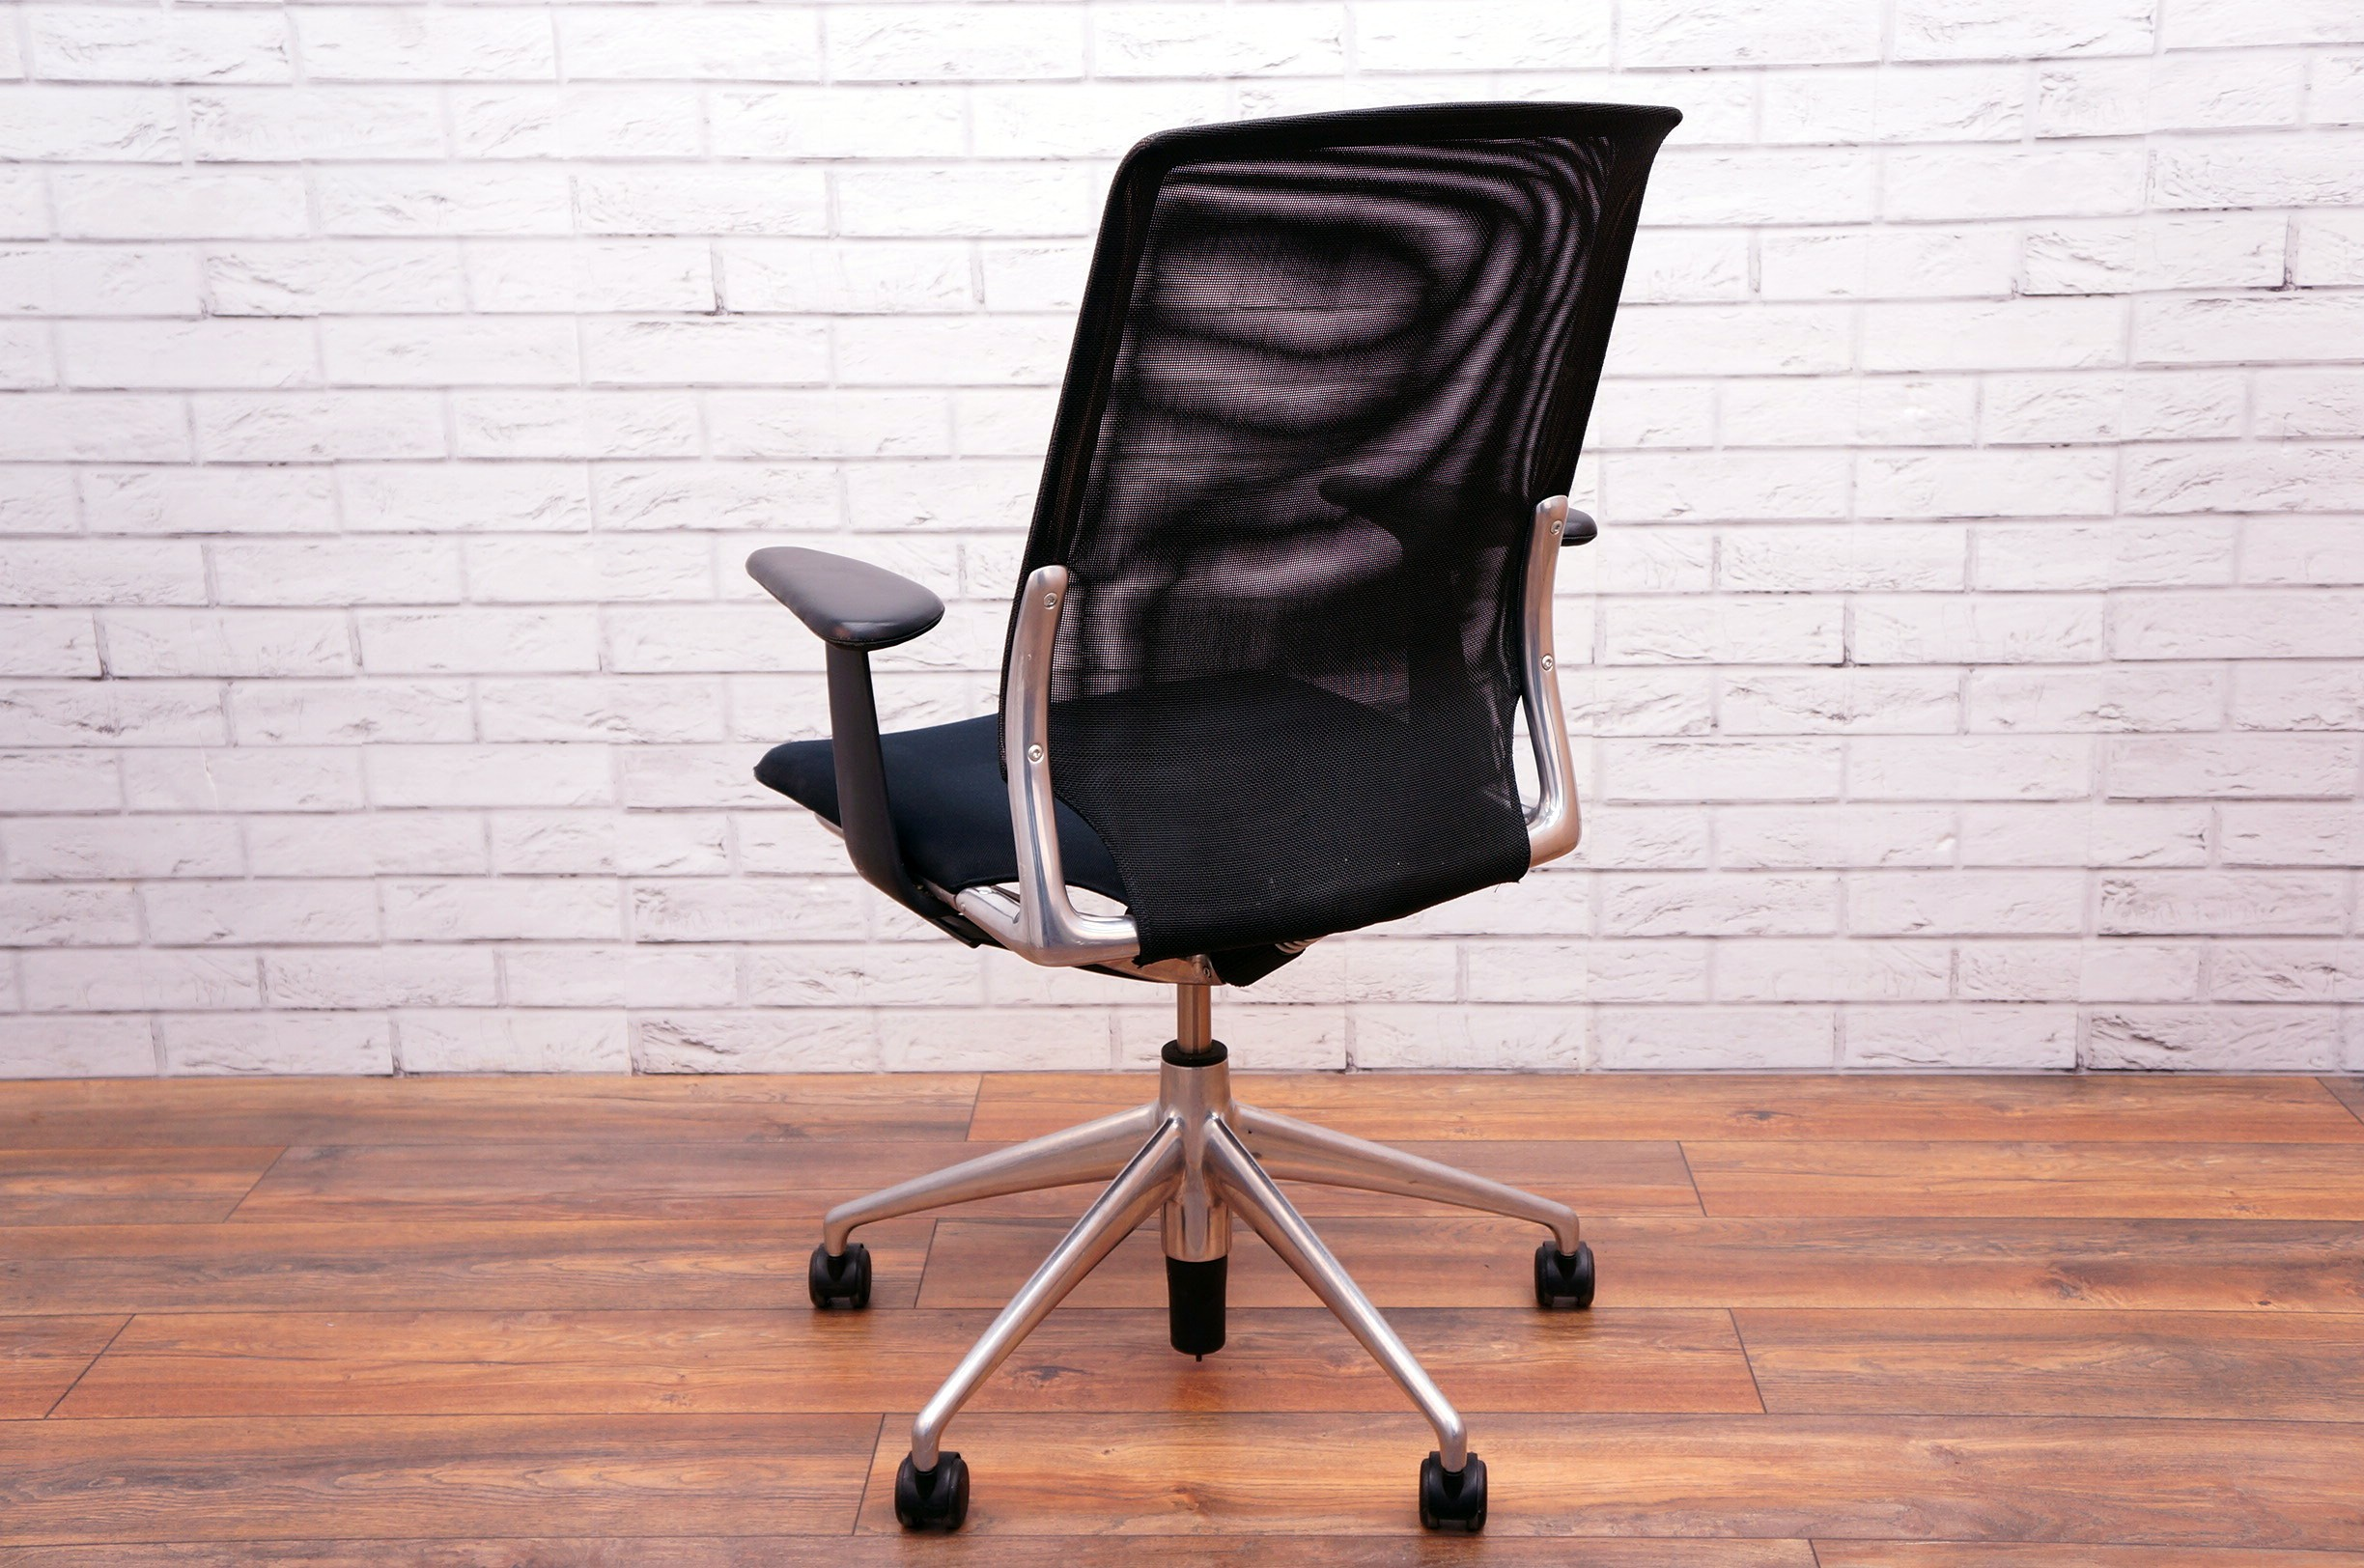 Vitra Office Chair Vitra Meda Executive Office Chair